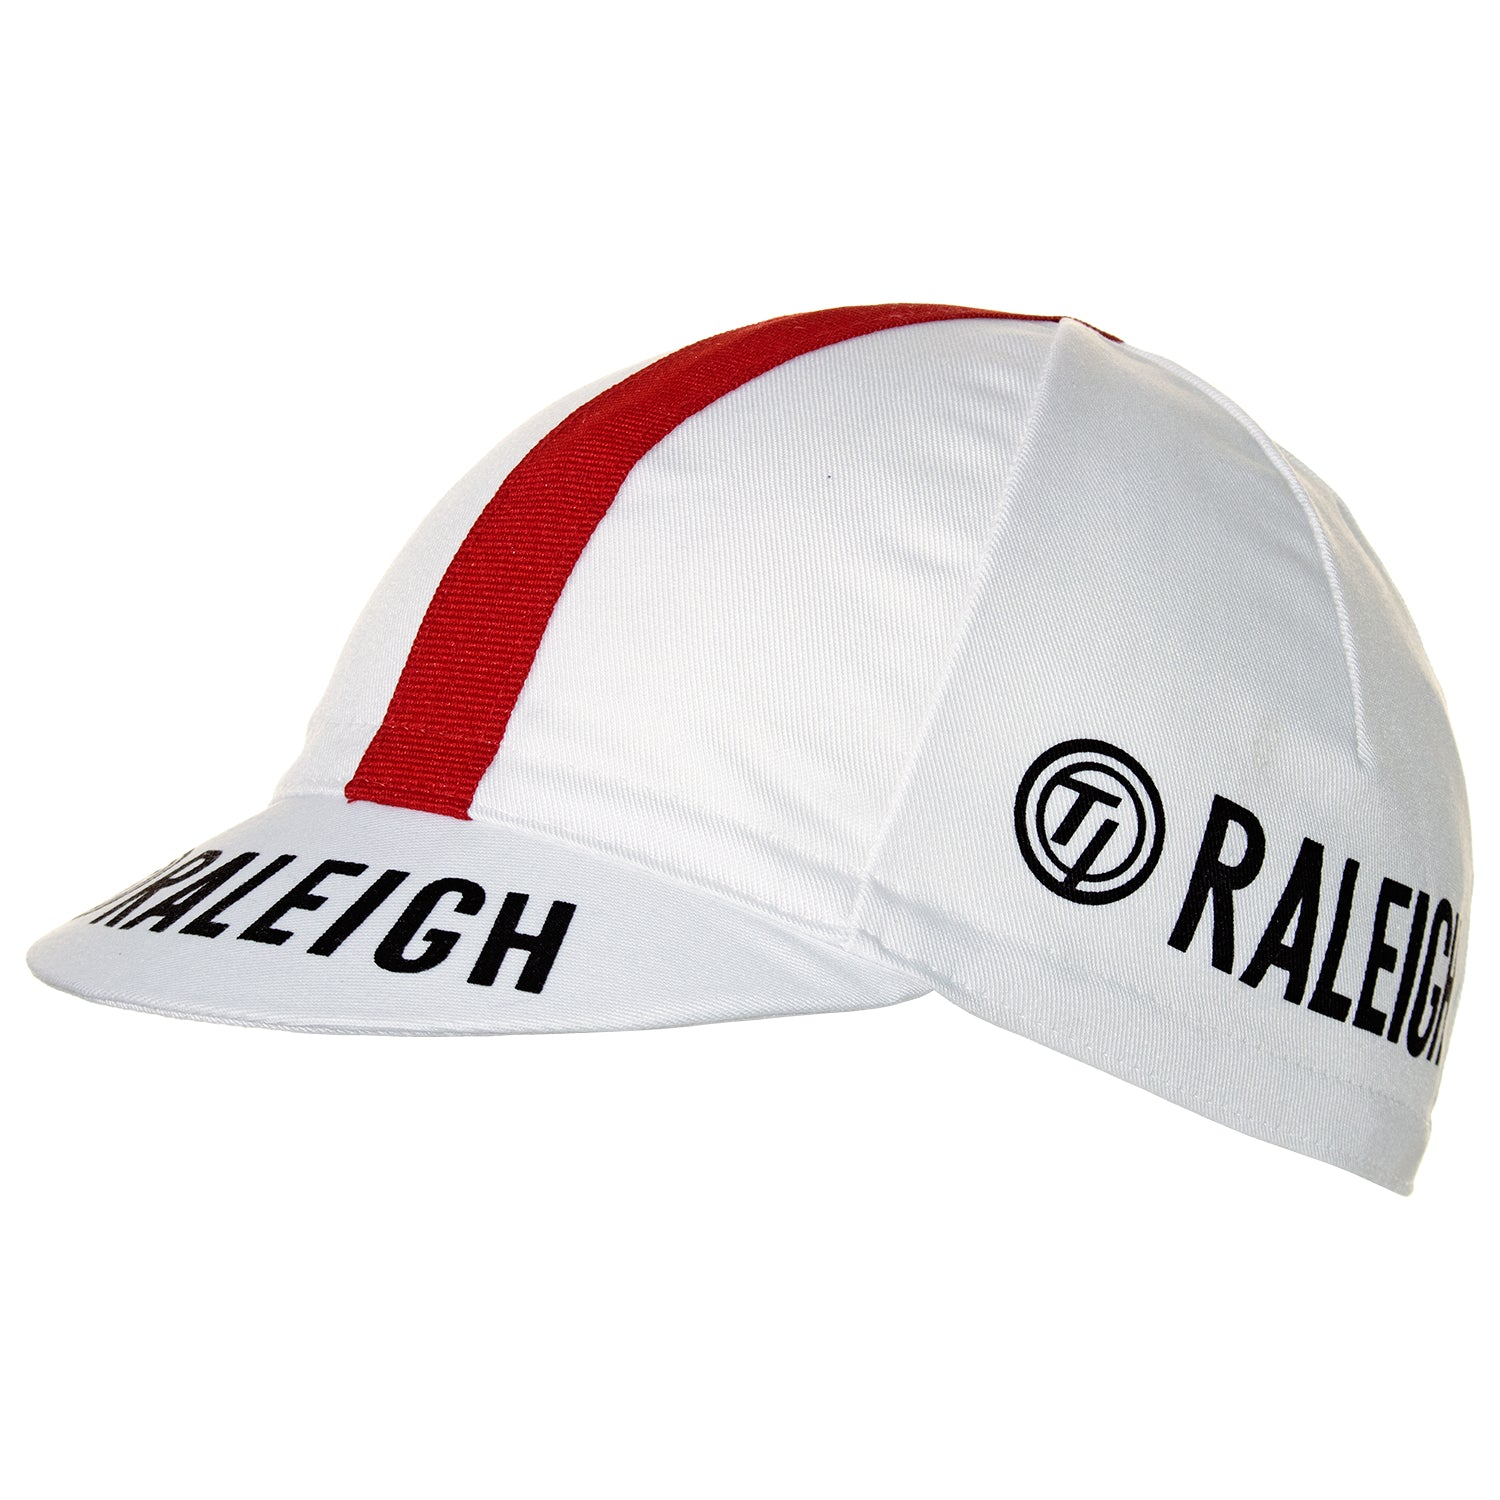 TI Raleigh Retro Cotton Cycling Cap